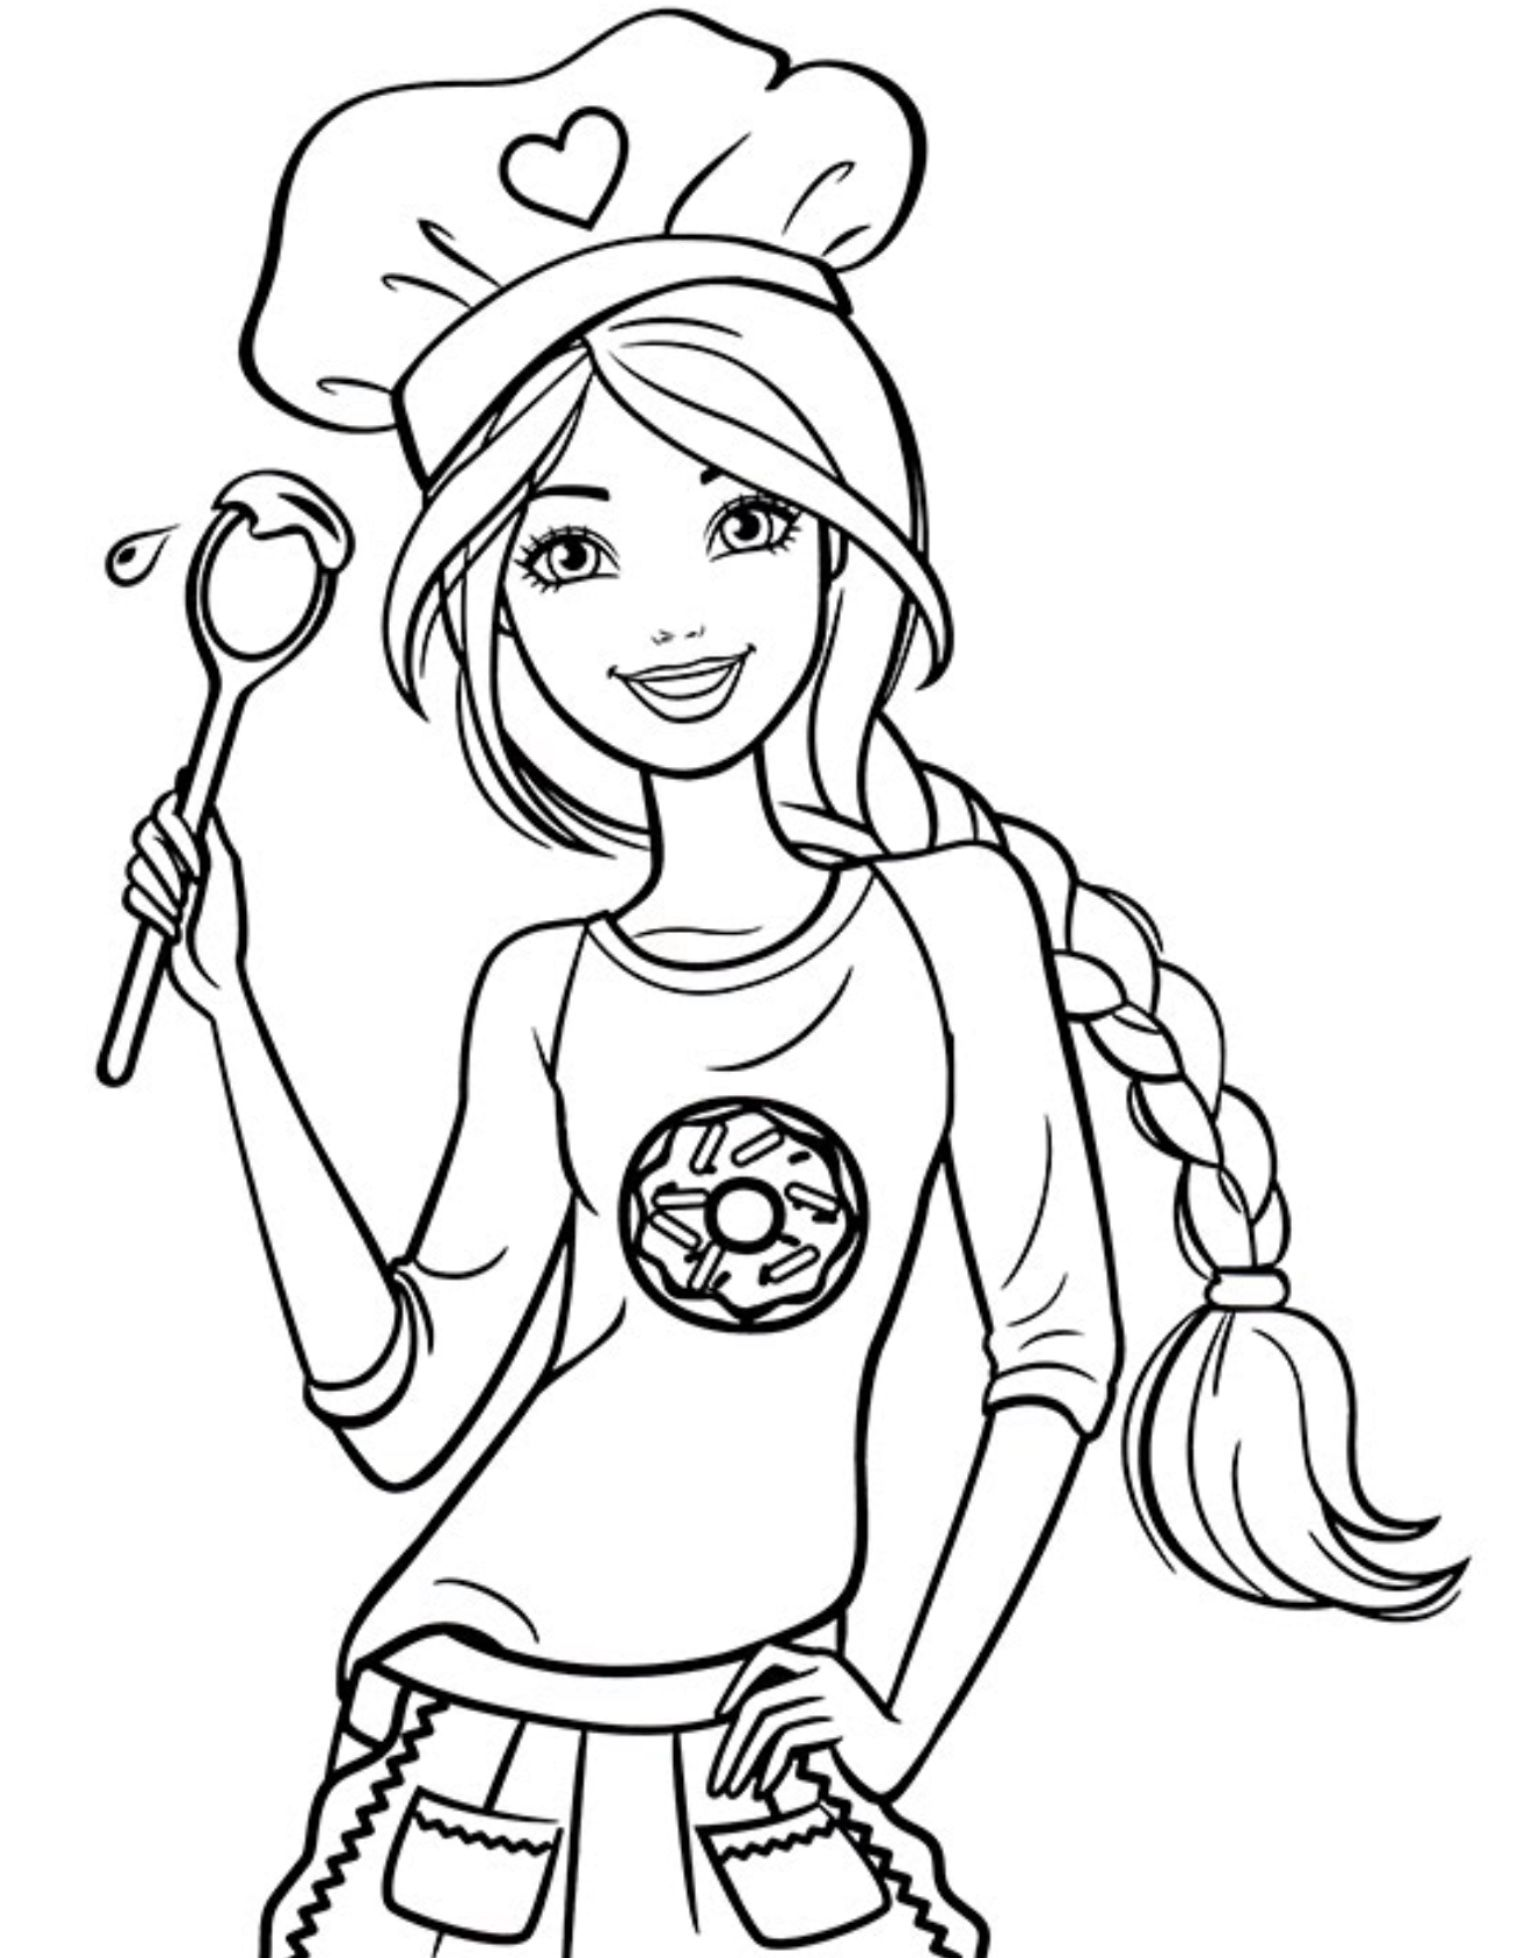 Chef Barbie Coloring Page Barbie Coloring Pages Mermaid Coloring Pages Elsa Coloring Pages